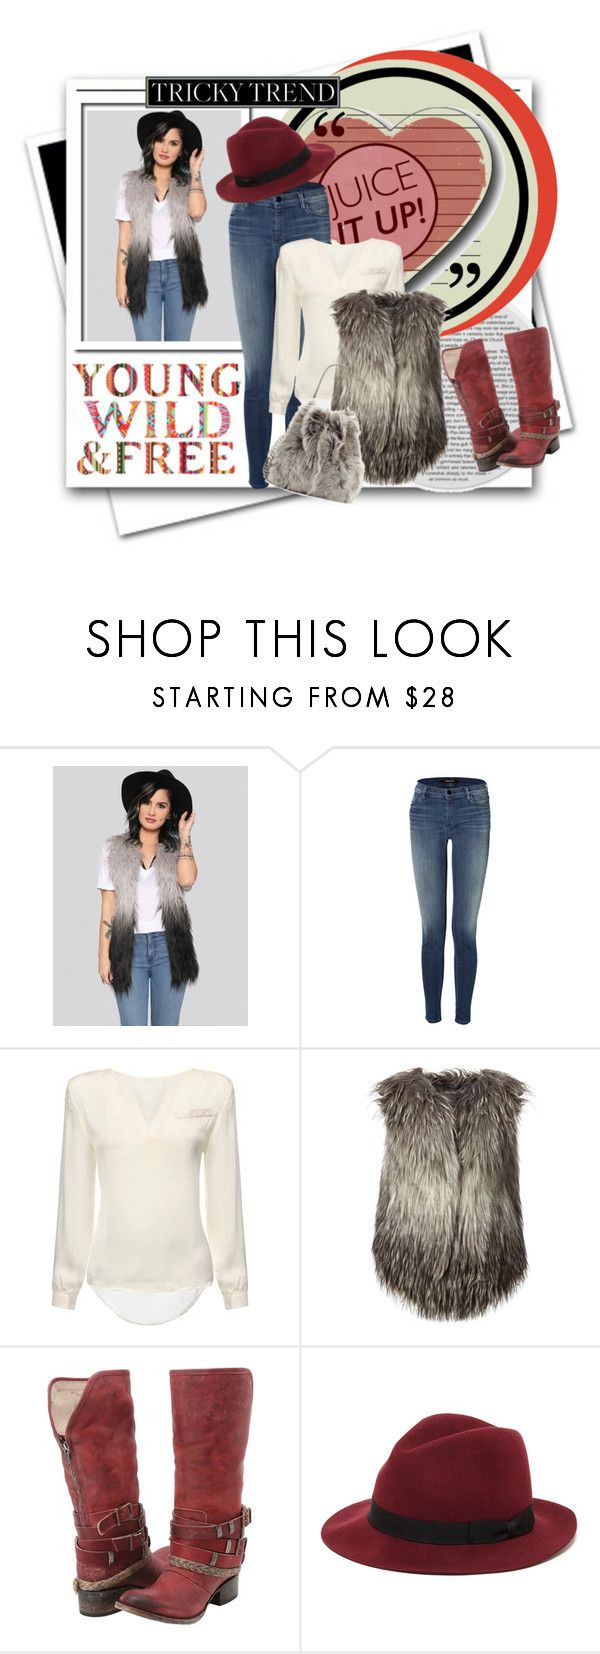 """""""Young wild & free...."""" by tinuviela ❤ liked on Polyvore featuring J Brand, Diesel, Freebird, Sole Society and fauxfurvest"""